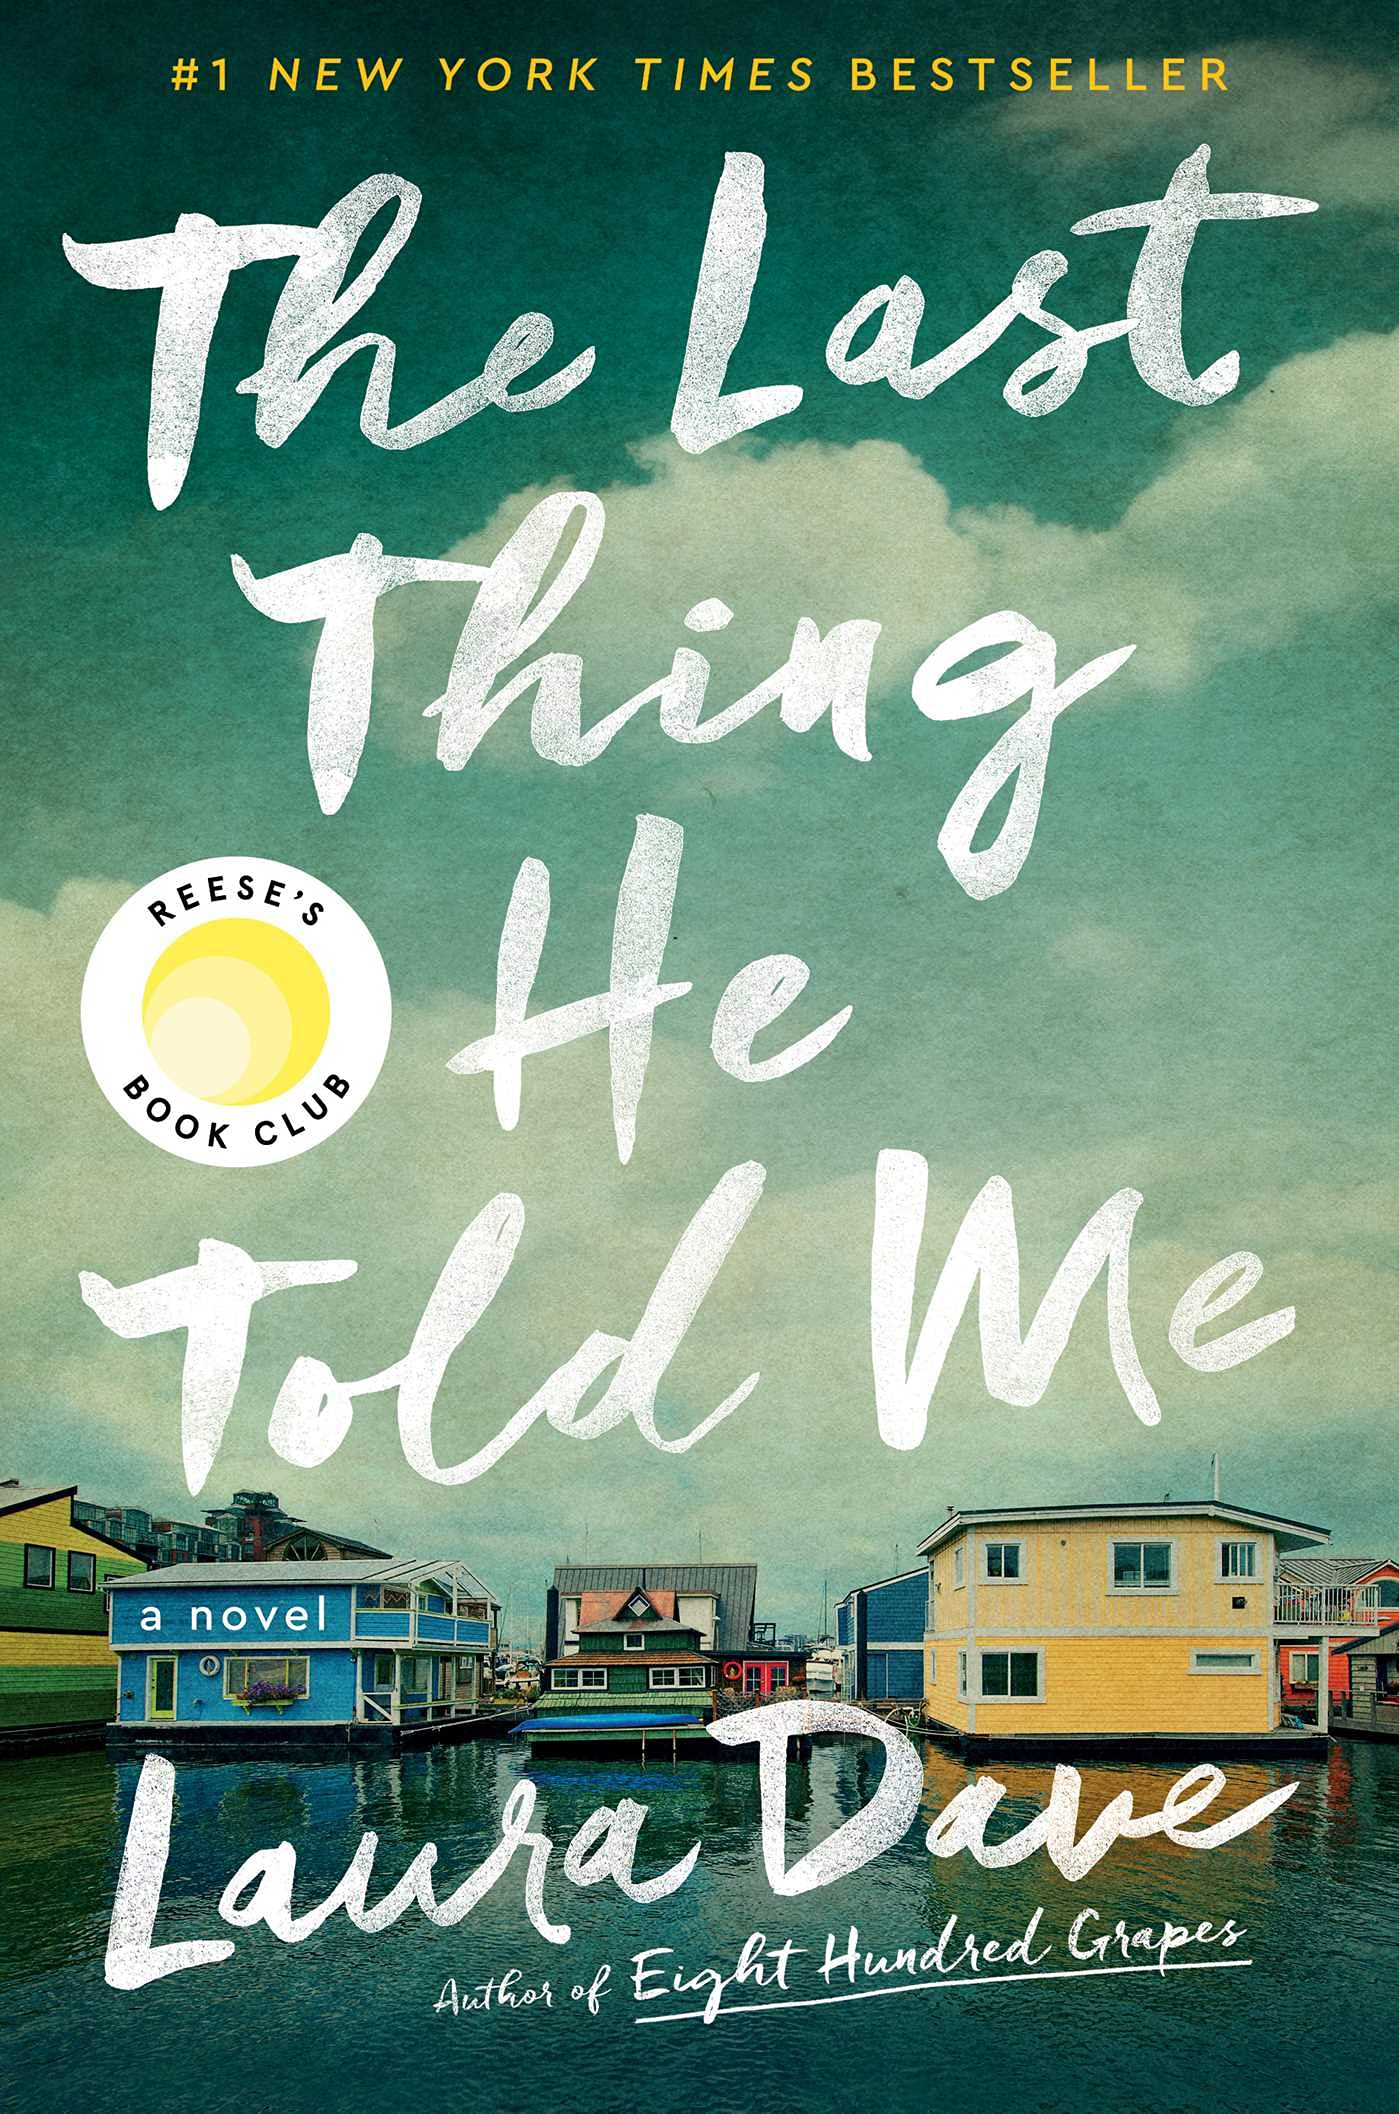 The Last Thing He Told Me book cover image from a June and July Reading Recap.